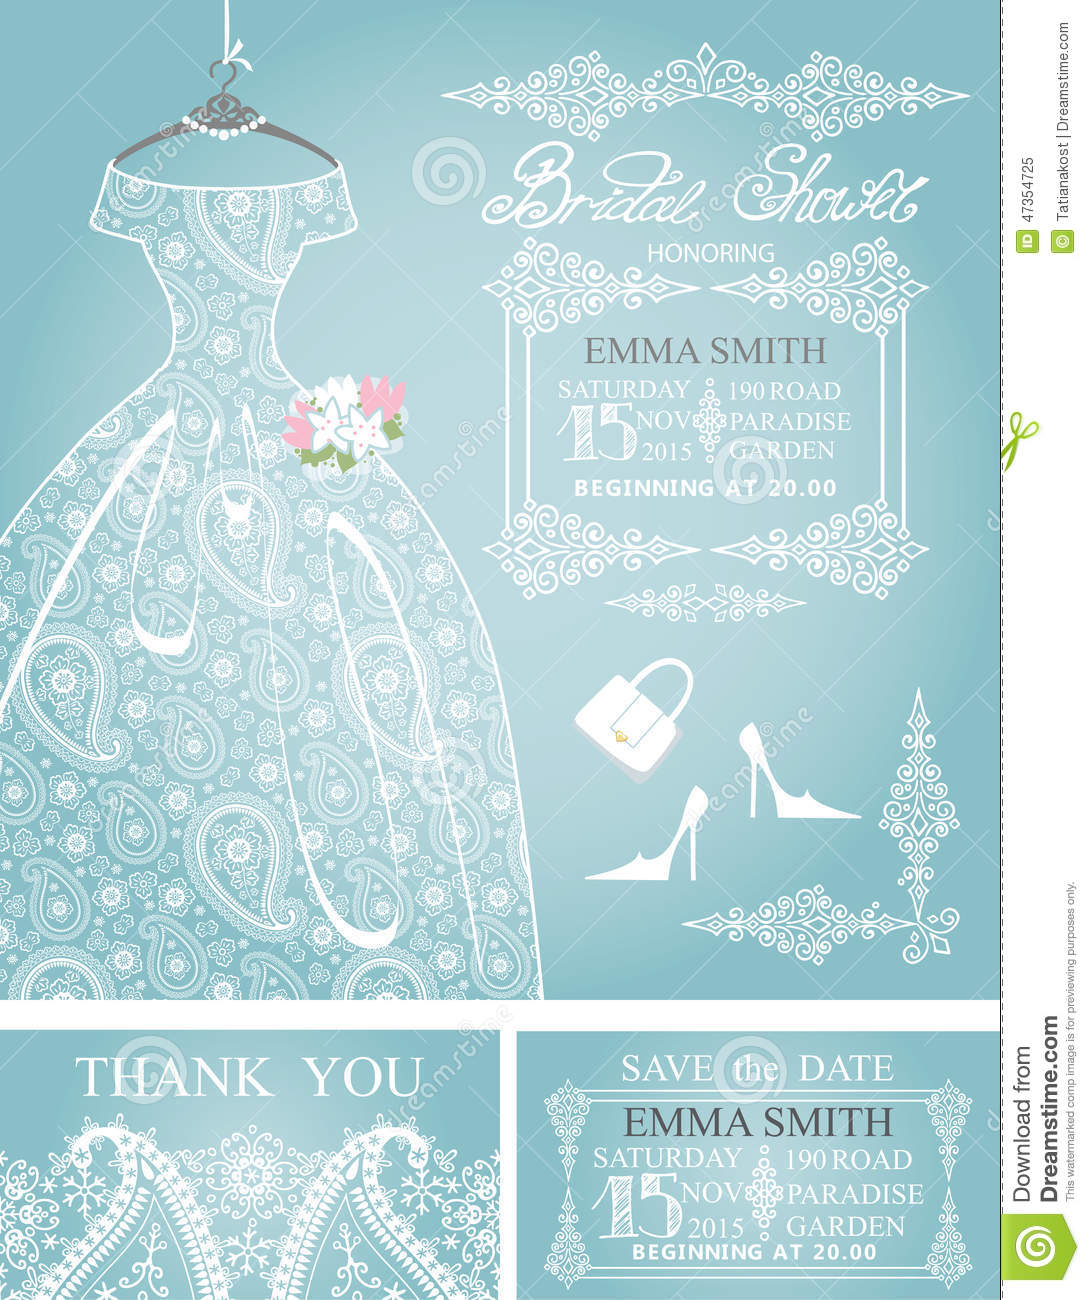 bridal shower invitation set wedding paisley lace